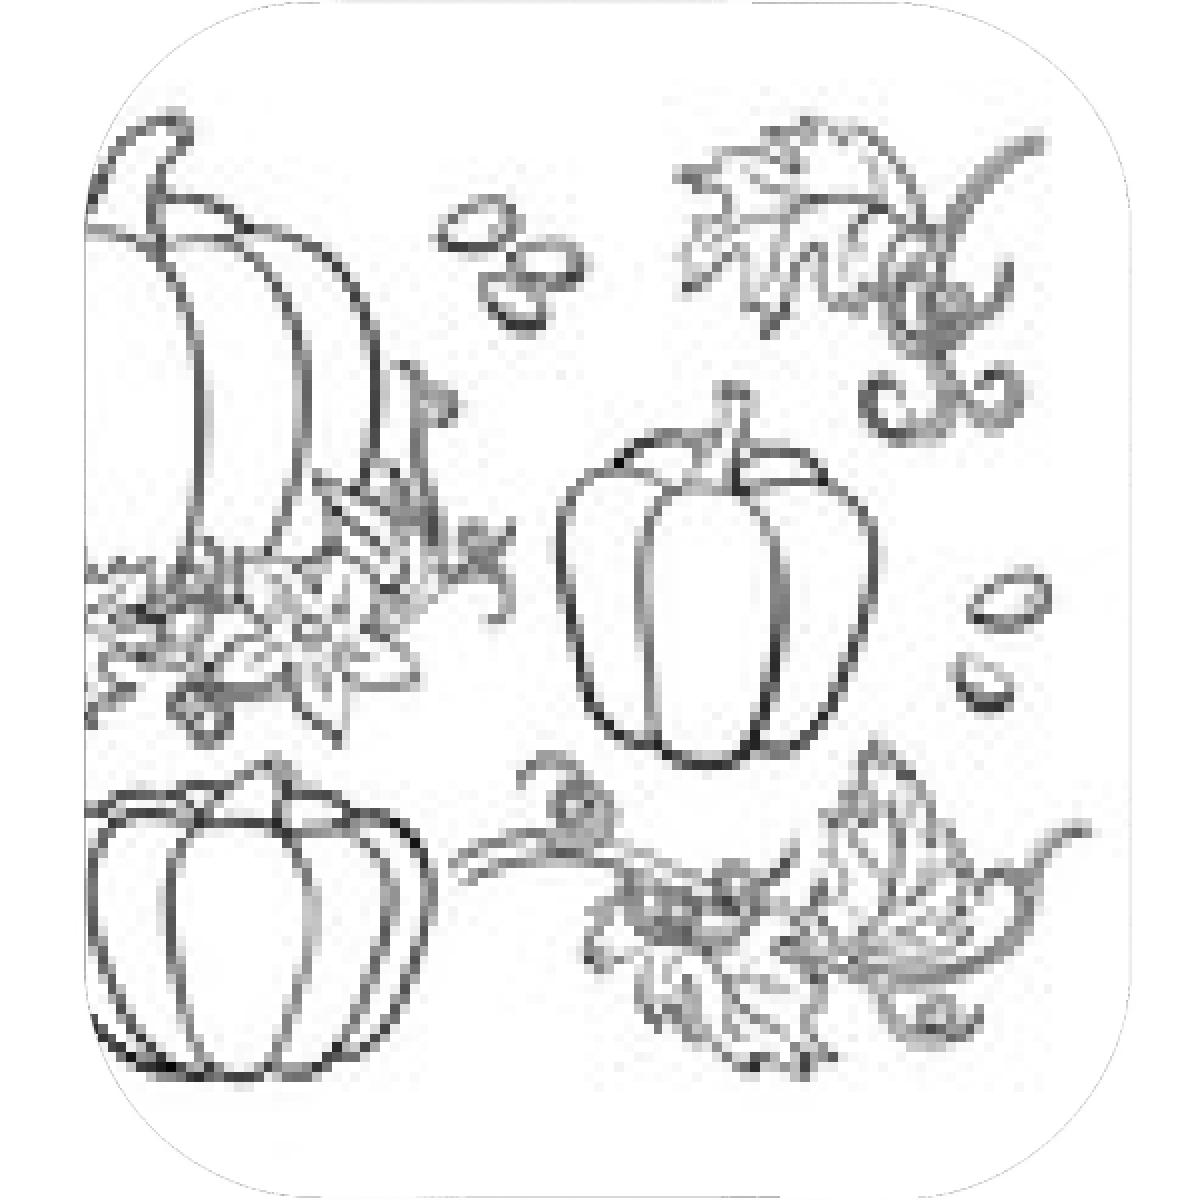 hight resolution of 1200x1200 designs mein mousepad design mousepad selbst designen pumpkin plant drawing